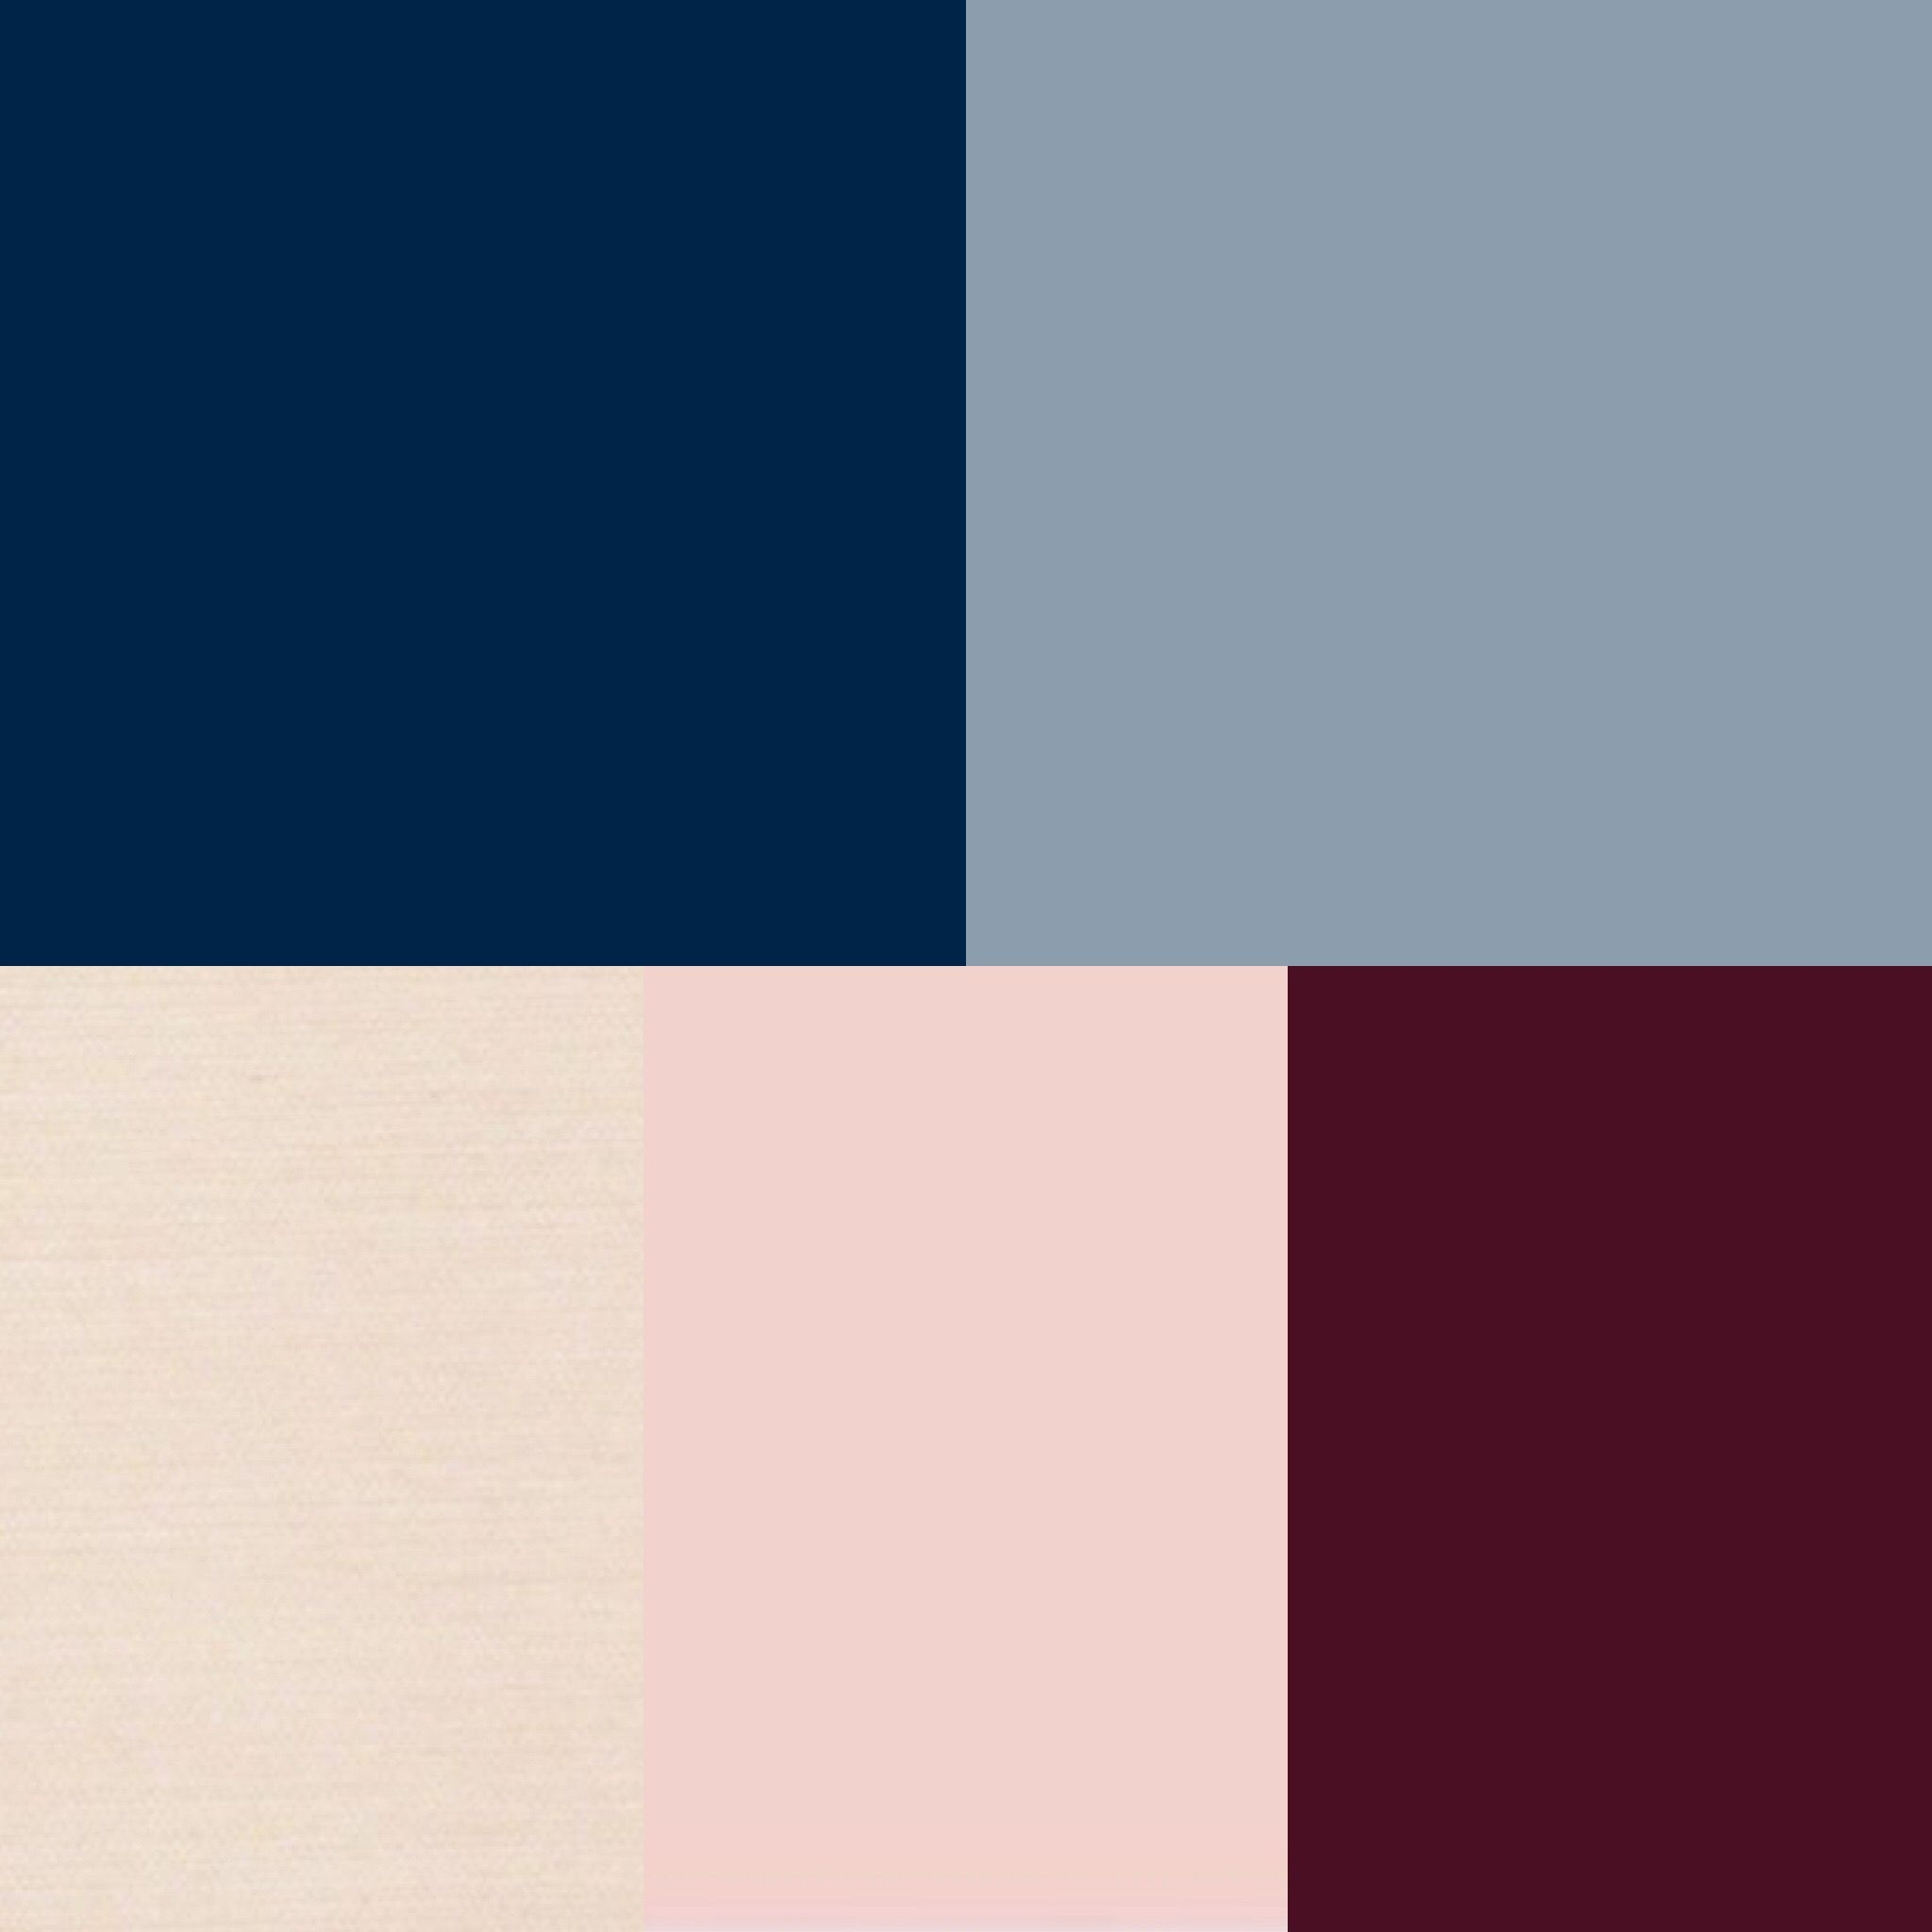 Navy Dusty Blue Champagne Blush And Burgundy Color Scheme Burgundy Color Scheme Blue Color Schemes Navy Color Palette